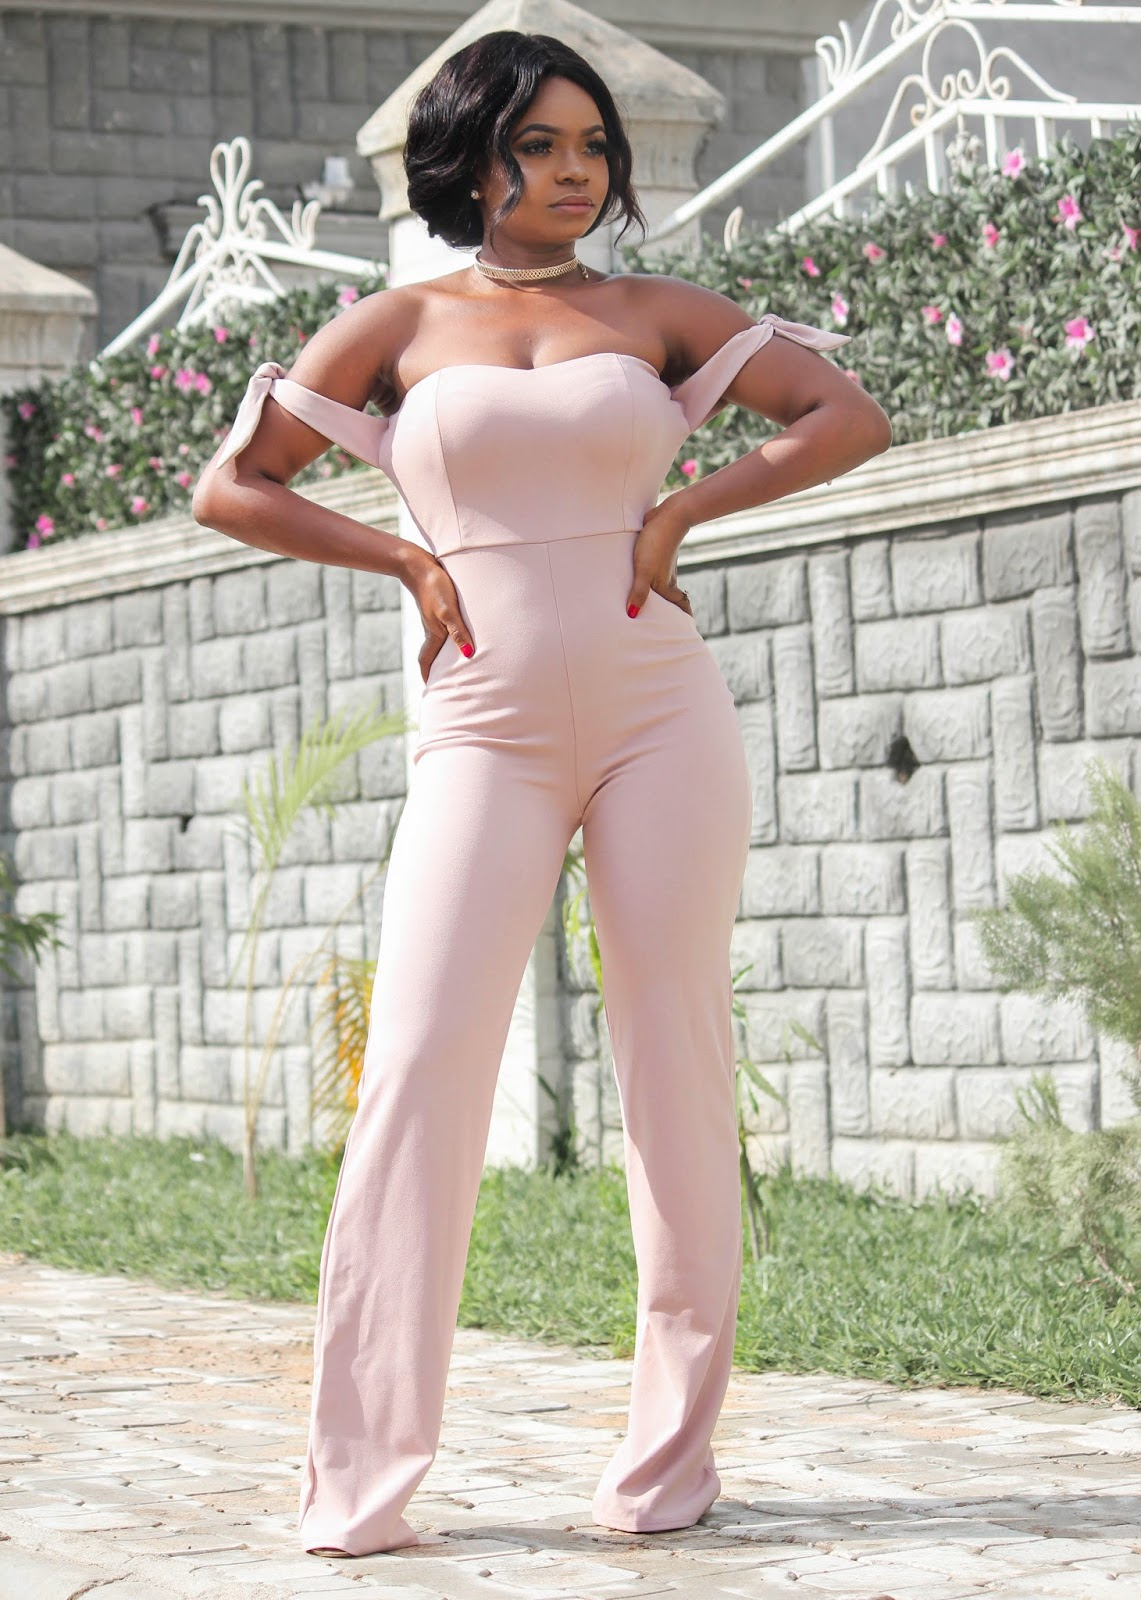 NUDE JUMPSUIT - Blushed Nude Off Shoulder Tie Knot Jumpsuit from Hot Miami Styles with Public Desire Sandals